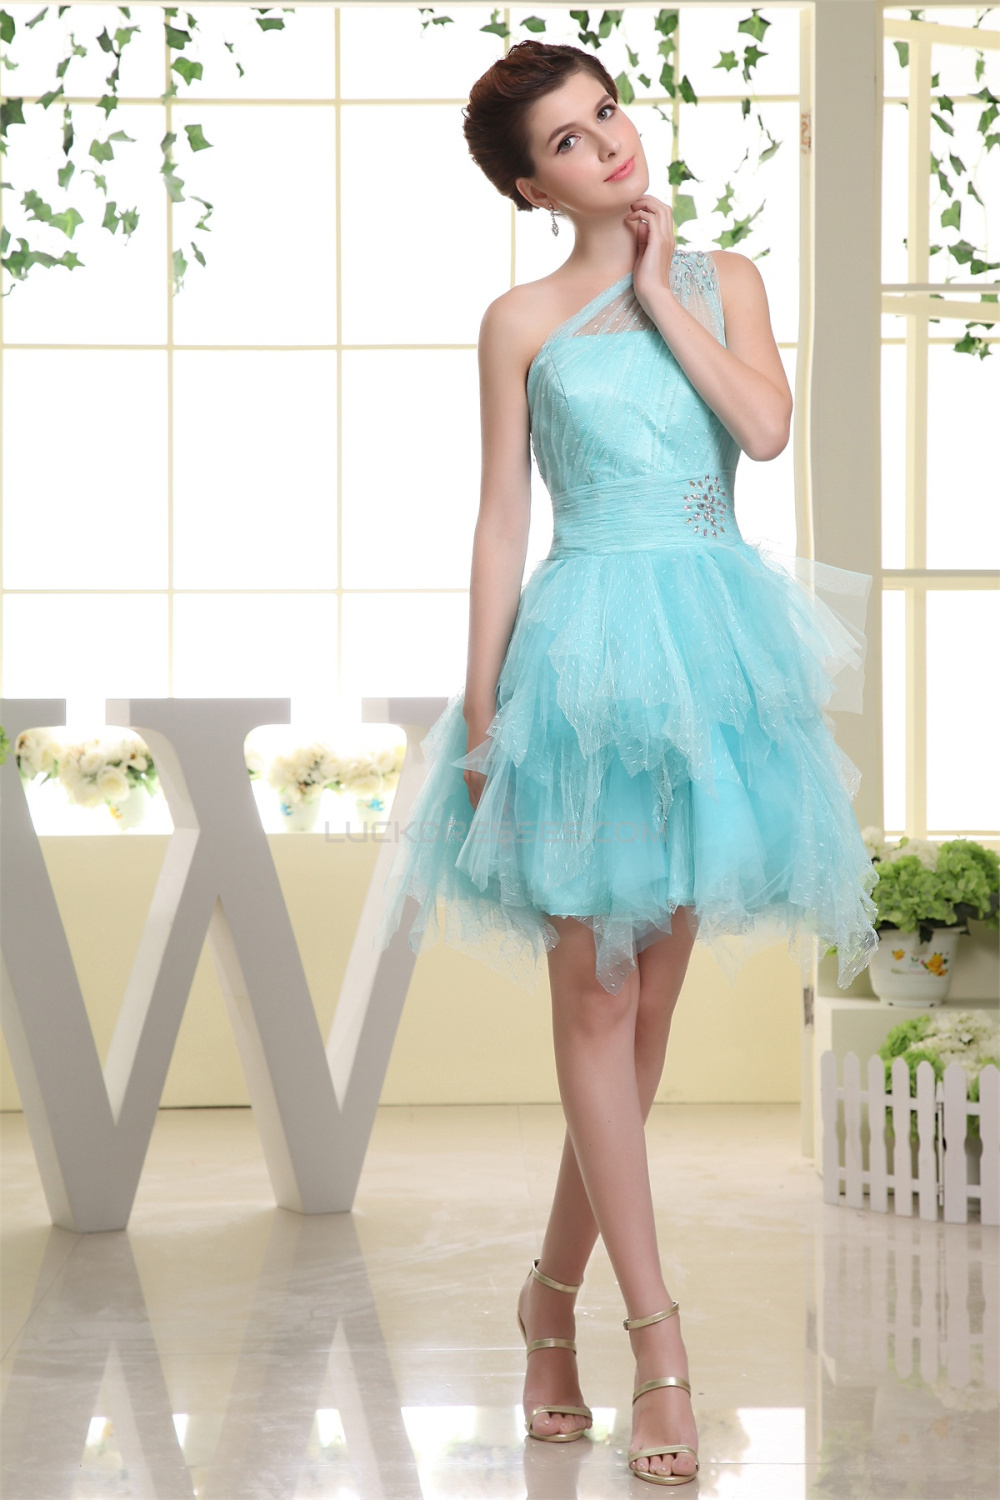 Charming Satin Netting Material One-Shoulder A-Line Homecoming ...